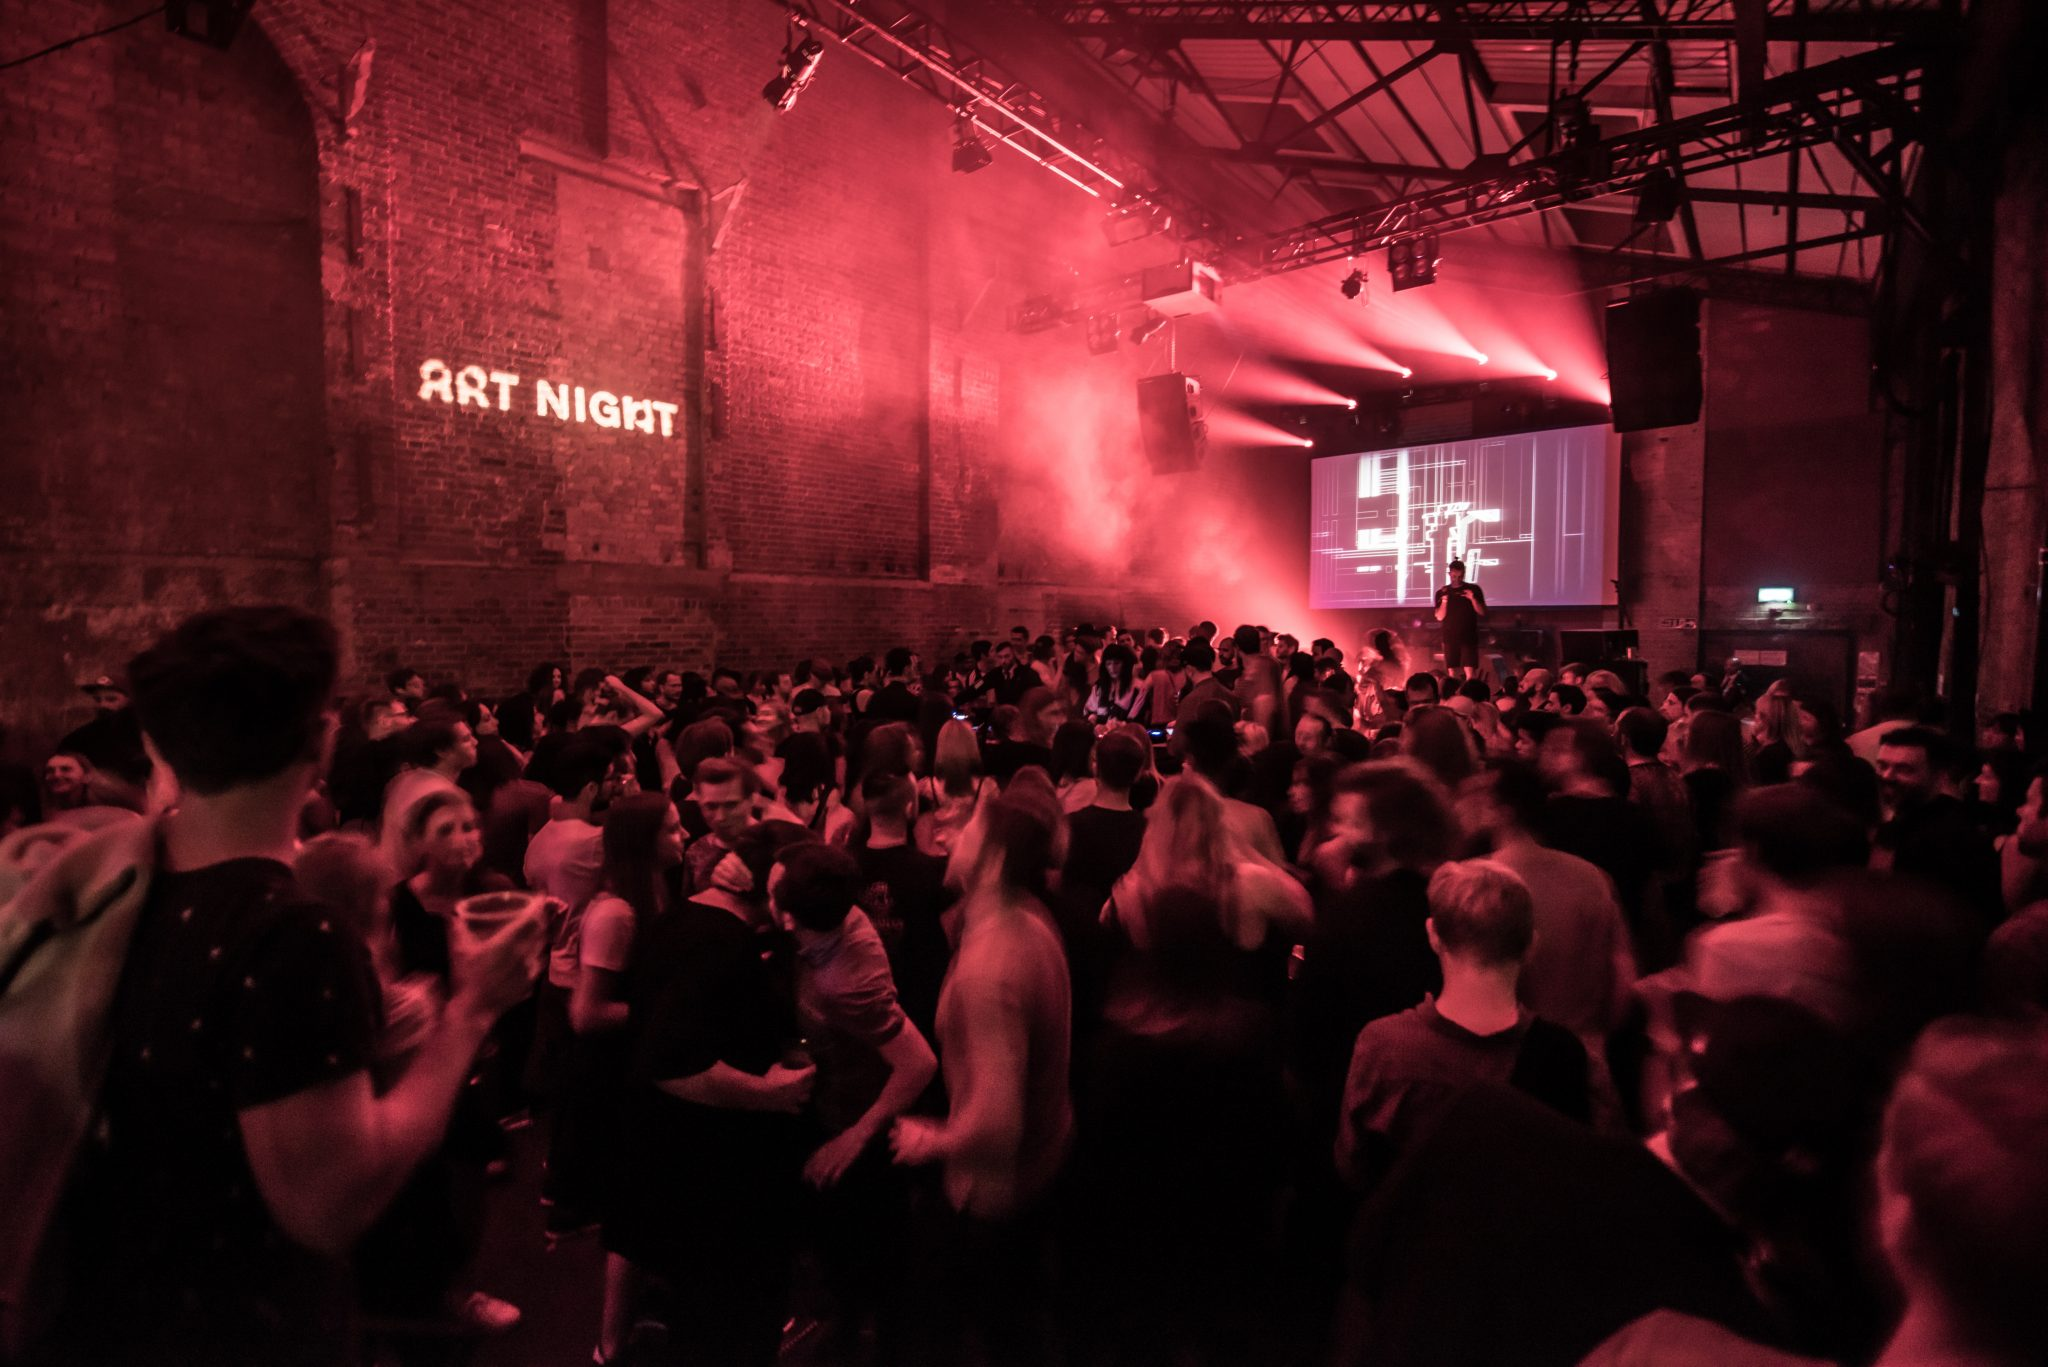 Club Night with Alva Noto and Boiler Room at Village Underground. Courtesy the artist and Art Night 2017. Photo by Neil Juggins FAD Magazine